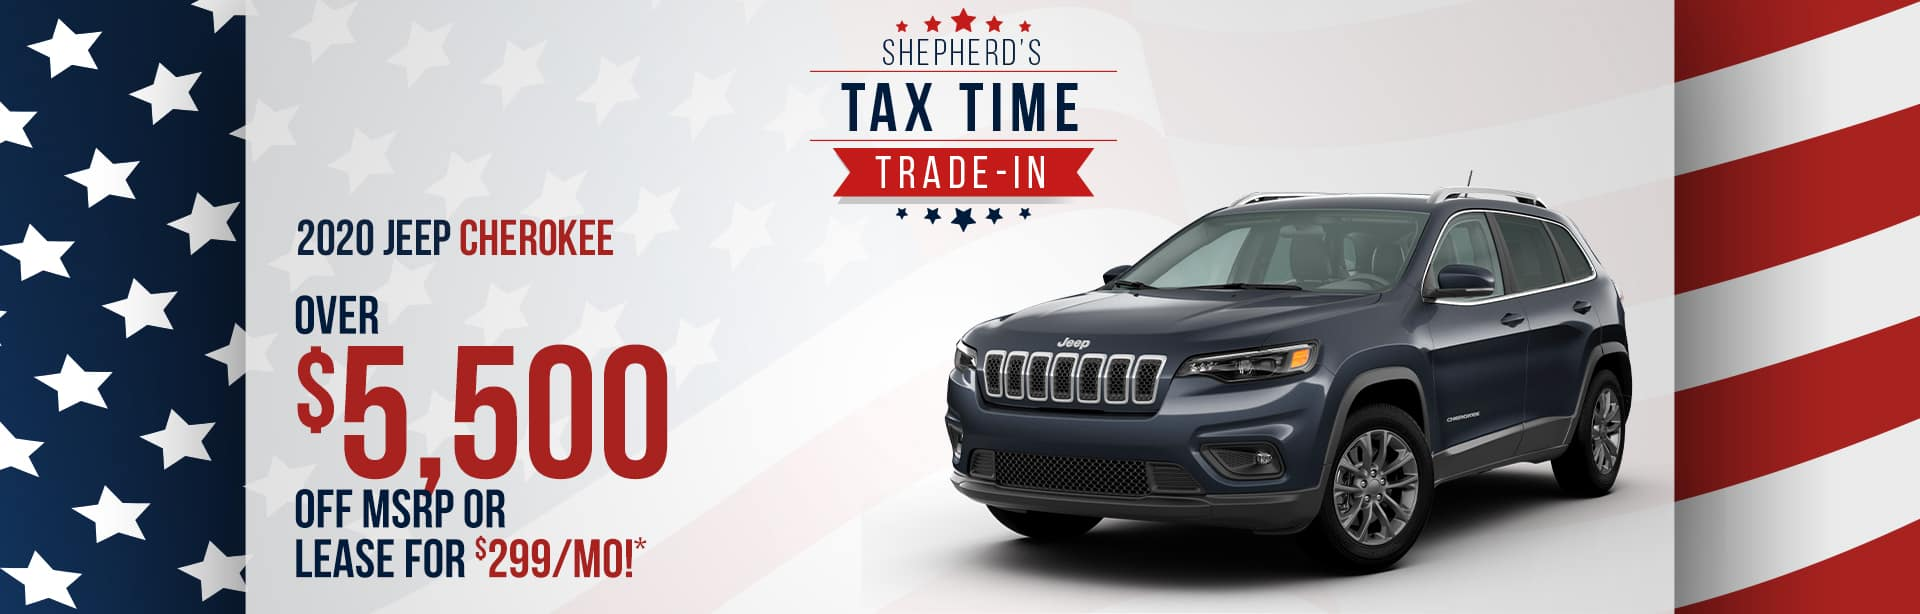 Best Deal on a New Jeep Cherokee near Defiance, Indiana